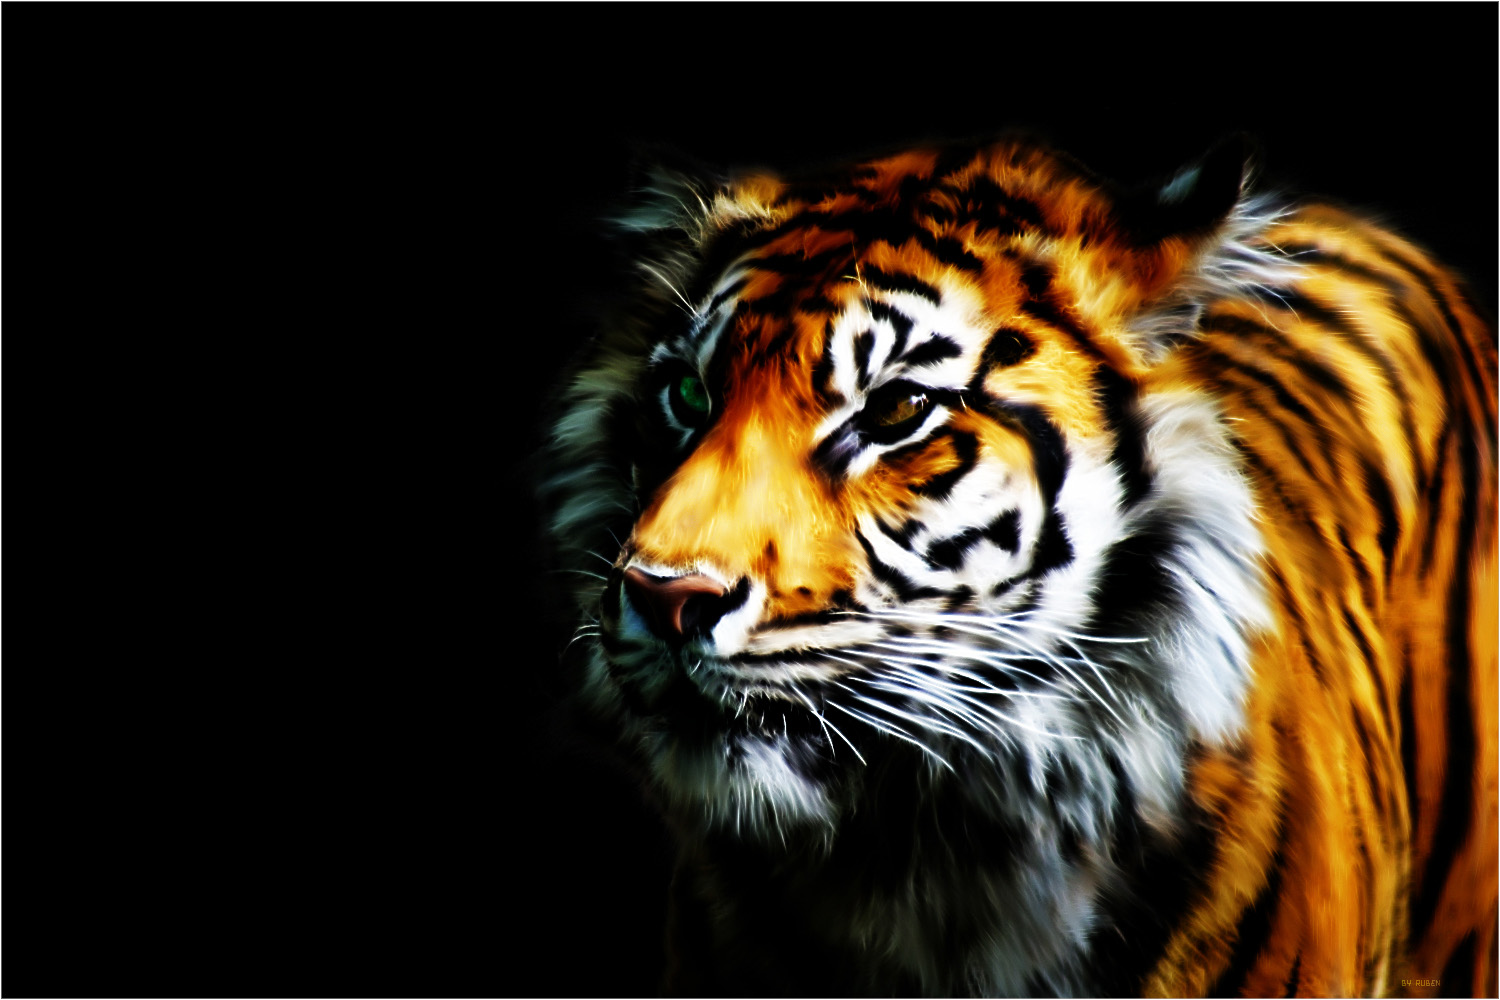 Tiger Desktop Backgrounds 1500x1000